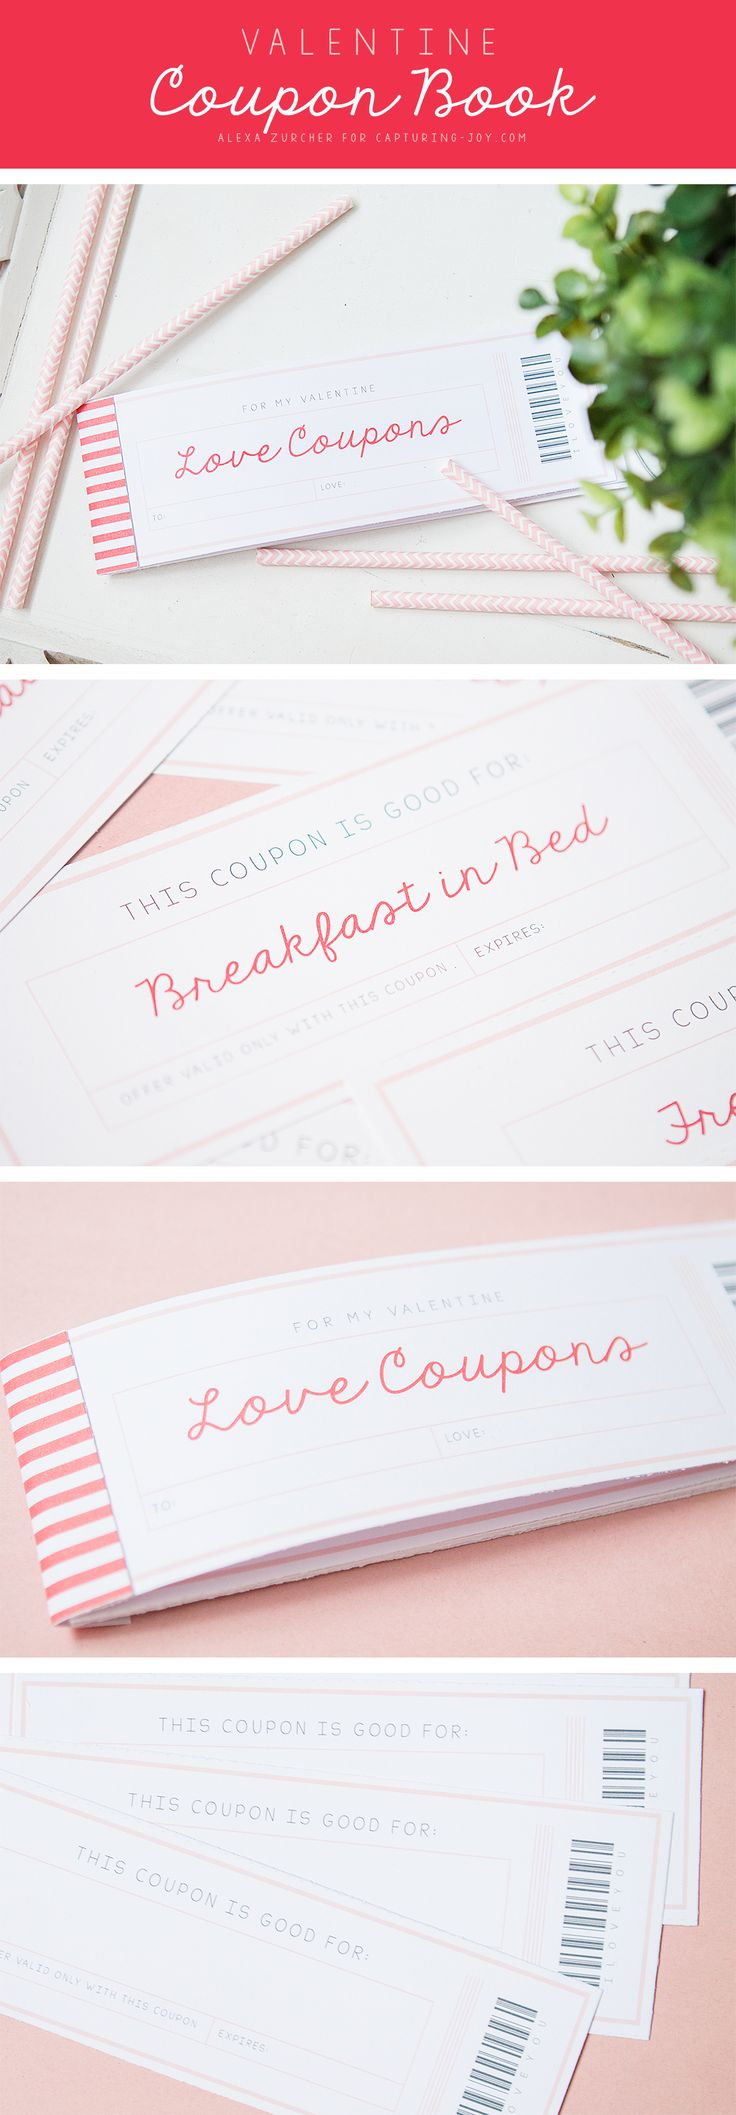 Great gift for that special someone on Valentine's Day!  Free printable LOVE Coupon book on Capturing-Joy.com!